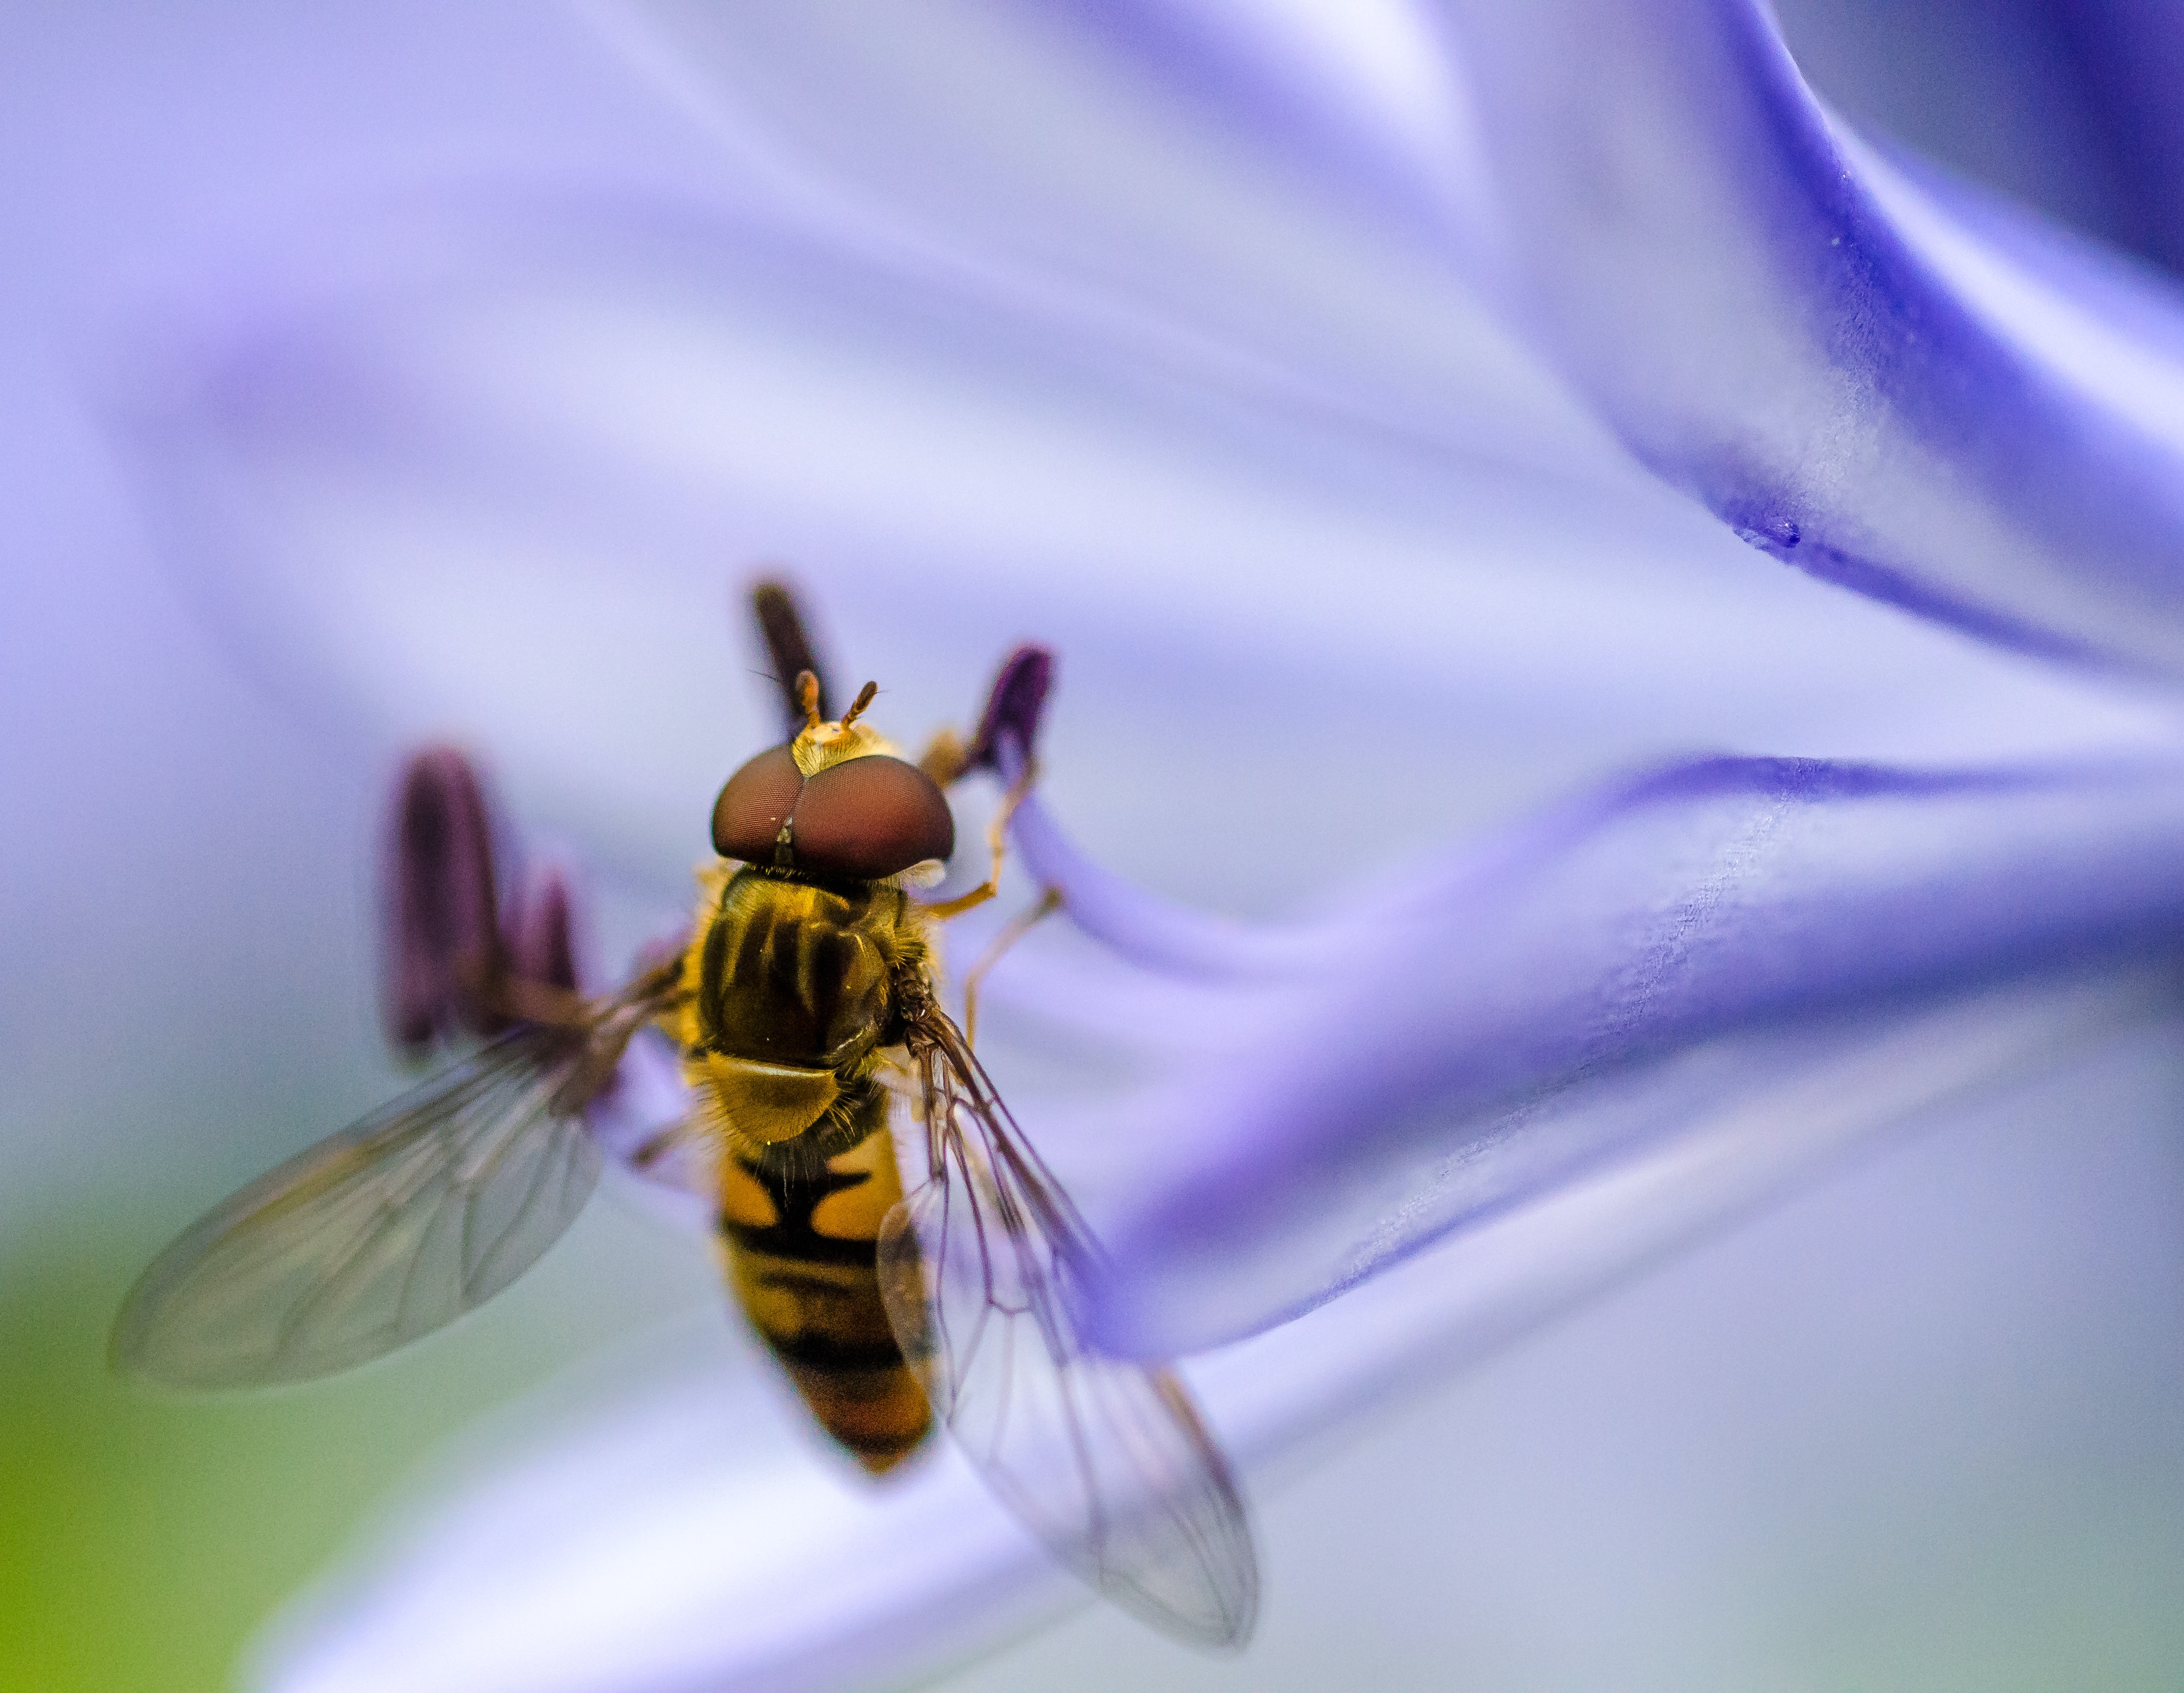 A macro shot of a wasp on a violet flower